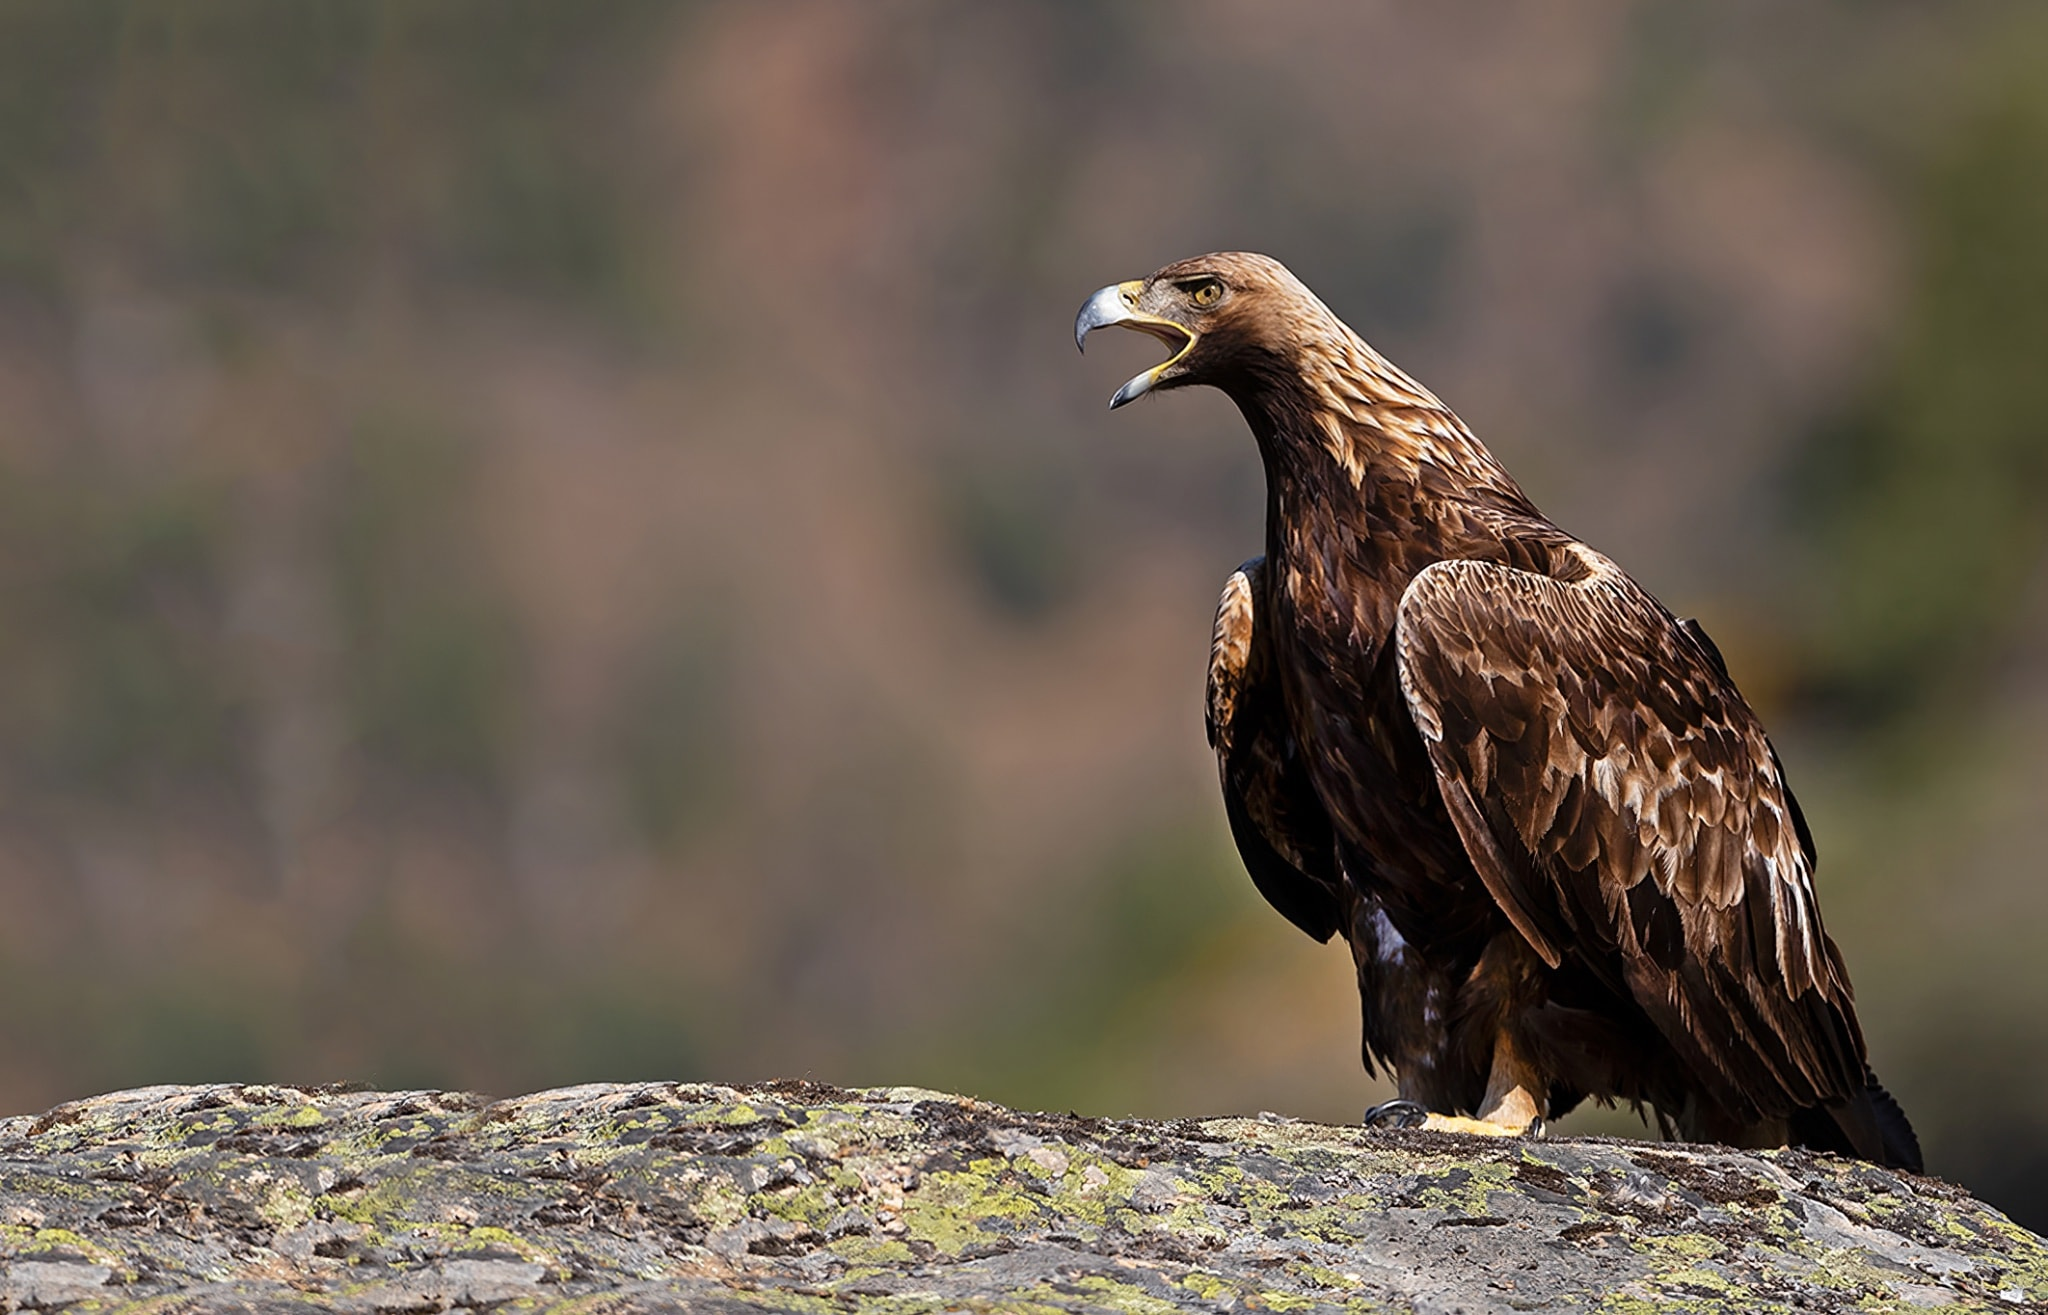 A Golden Eagle calls to announce its presence photographed at the locations used for the NaturesLens Spanish Birds of the Castilian Plains photography holiday